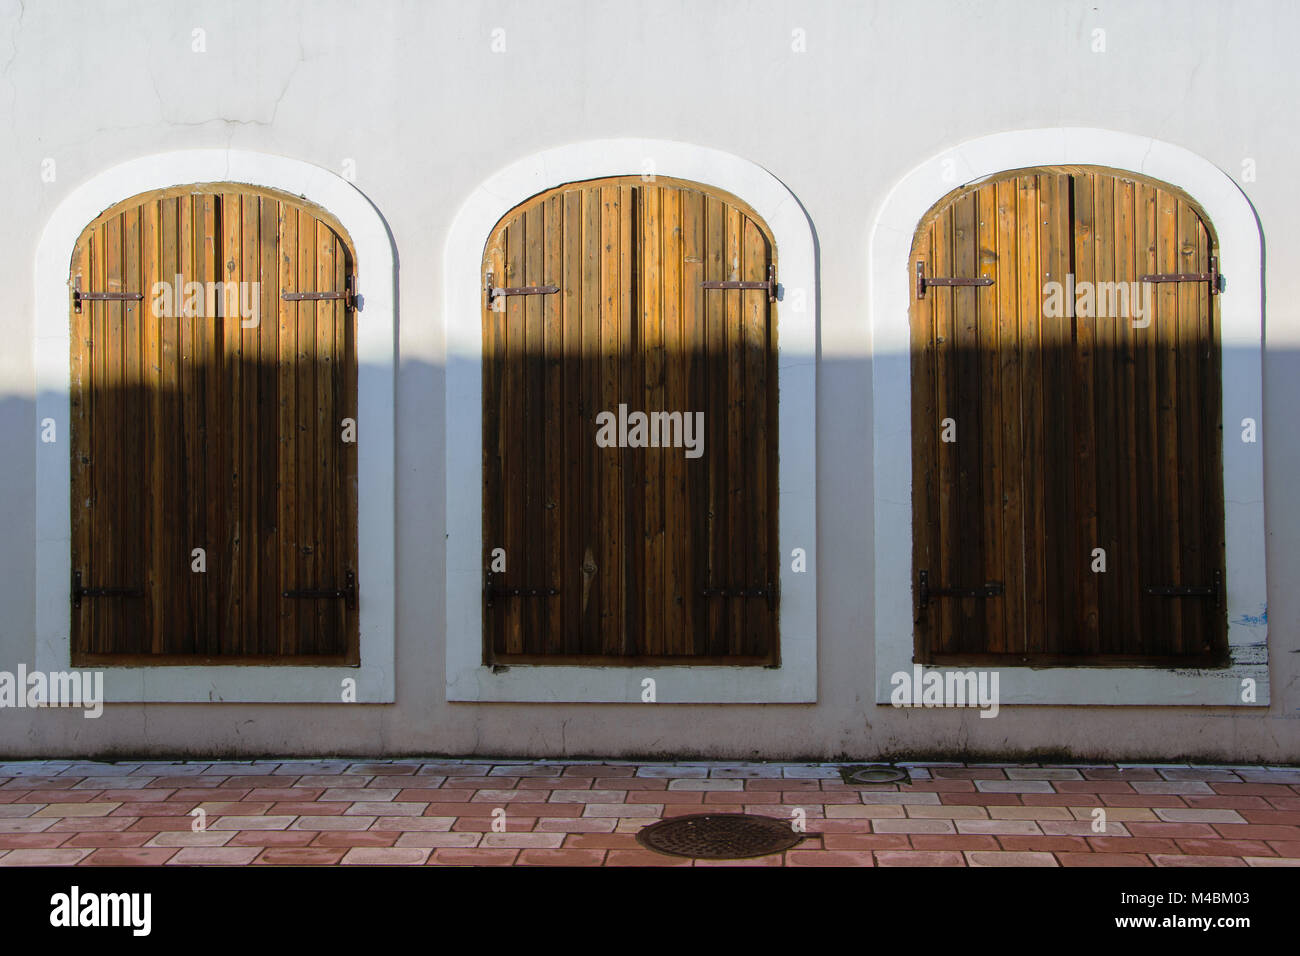 Three equal antique windows-doors, concept - make your choice with  different outputs - Three Equal Antique Windows-doors, Concept - Make Your Choice With